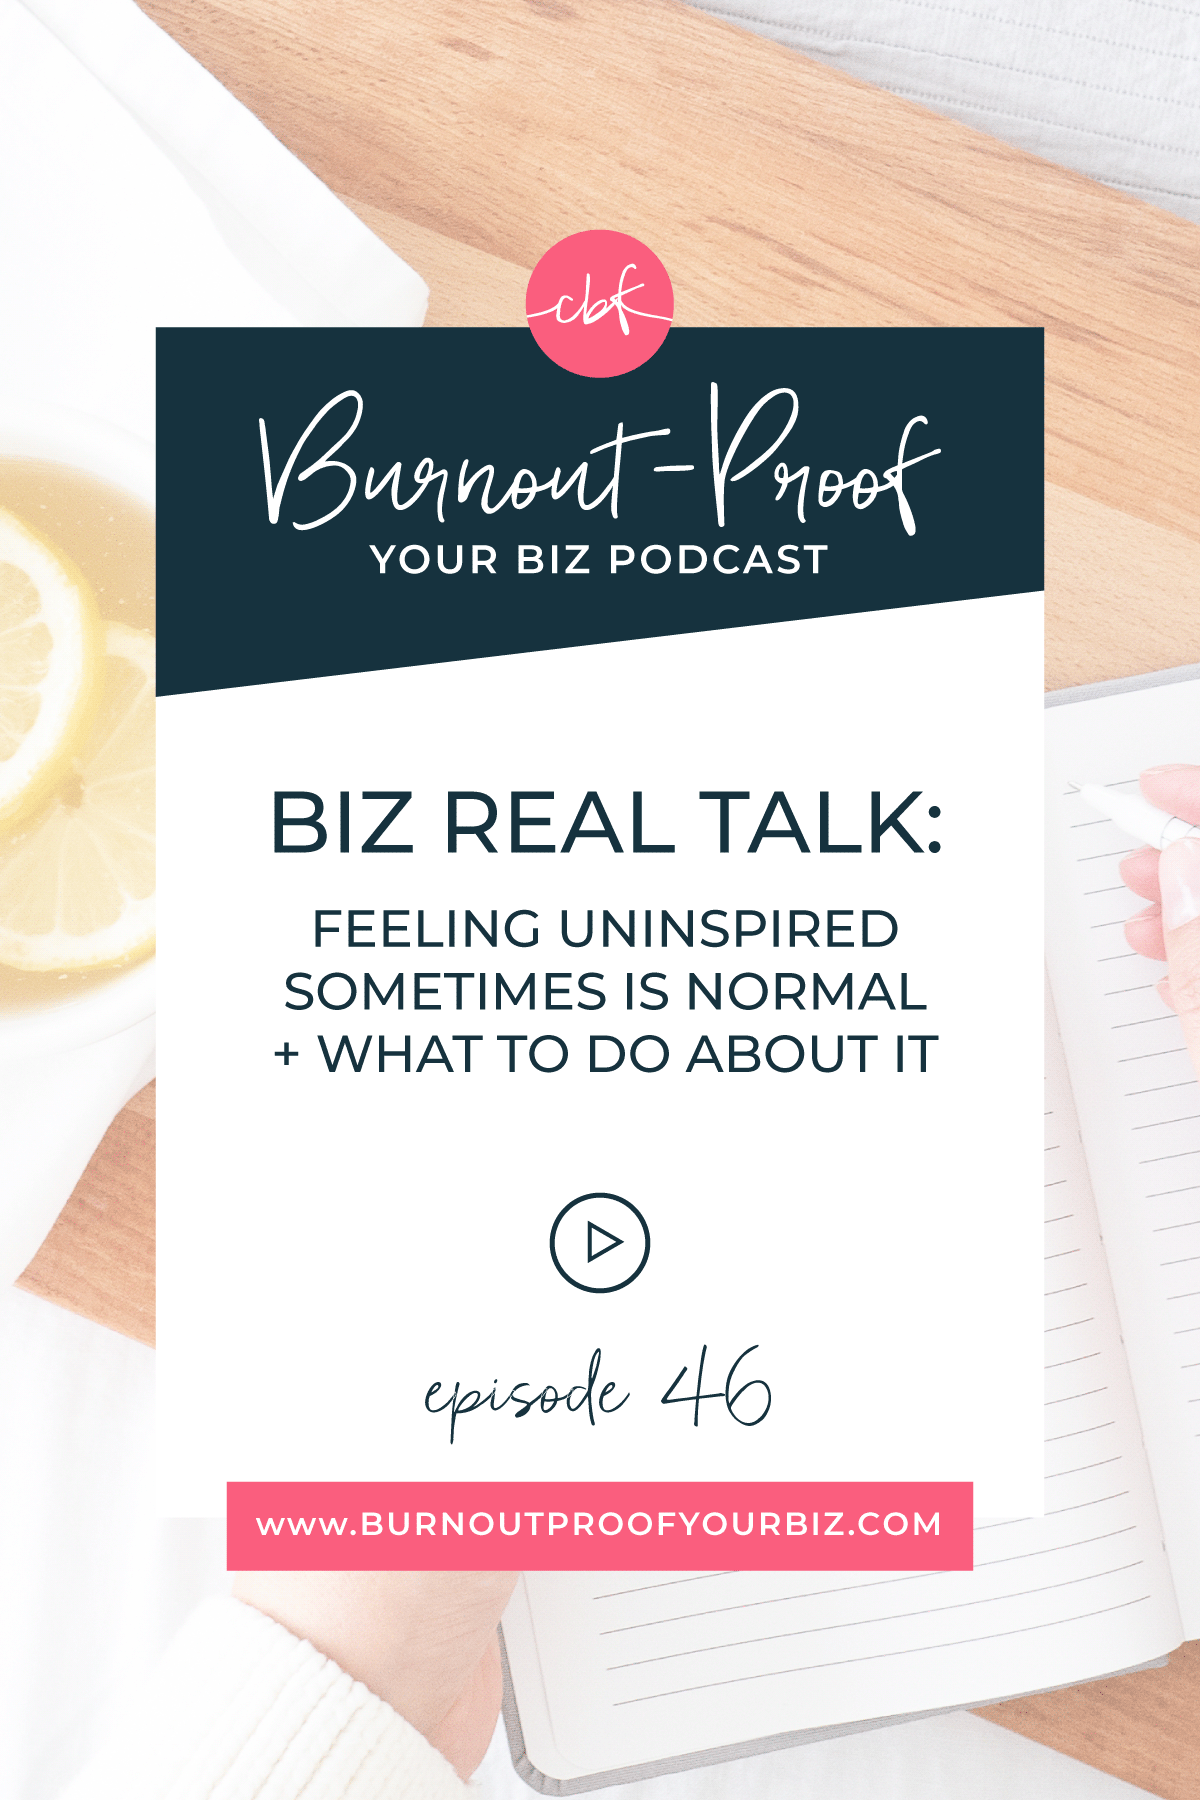 Burnout-Proof Your Biz Podcast with Chelsea B Foster   Episode 046 - Biz Real Talk: Feeling Uninspired Sometimes is Normal + What To Do About It   Learn how to run your biz and live your dream life on your own terms without the fear of burnout.  Business Coach   Workflow & Productivity Specialist   Feeling Uninspired   Feeling Disconnected to your work   The Reality of Running Your Own Business   Behind-the-scenes   Transparency   Vulnerable moments in our business   Ups and Downs of Solo-preneurship   What to do when you feel uninspired   What to do when you feel disconnected to your work   How to get re-inspired in your business   How to realign with your business   Overwhelmed   Stressed-out   Journaling Activity   Creative Entrepreneur   Productivity   Dream life   Freedom lifestyle   Having a business that supports your dream life